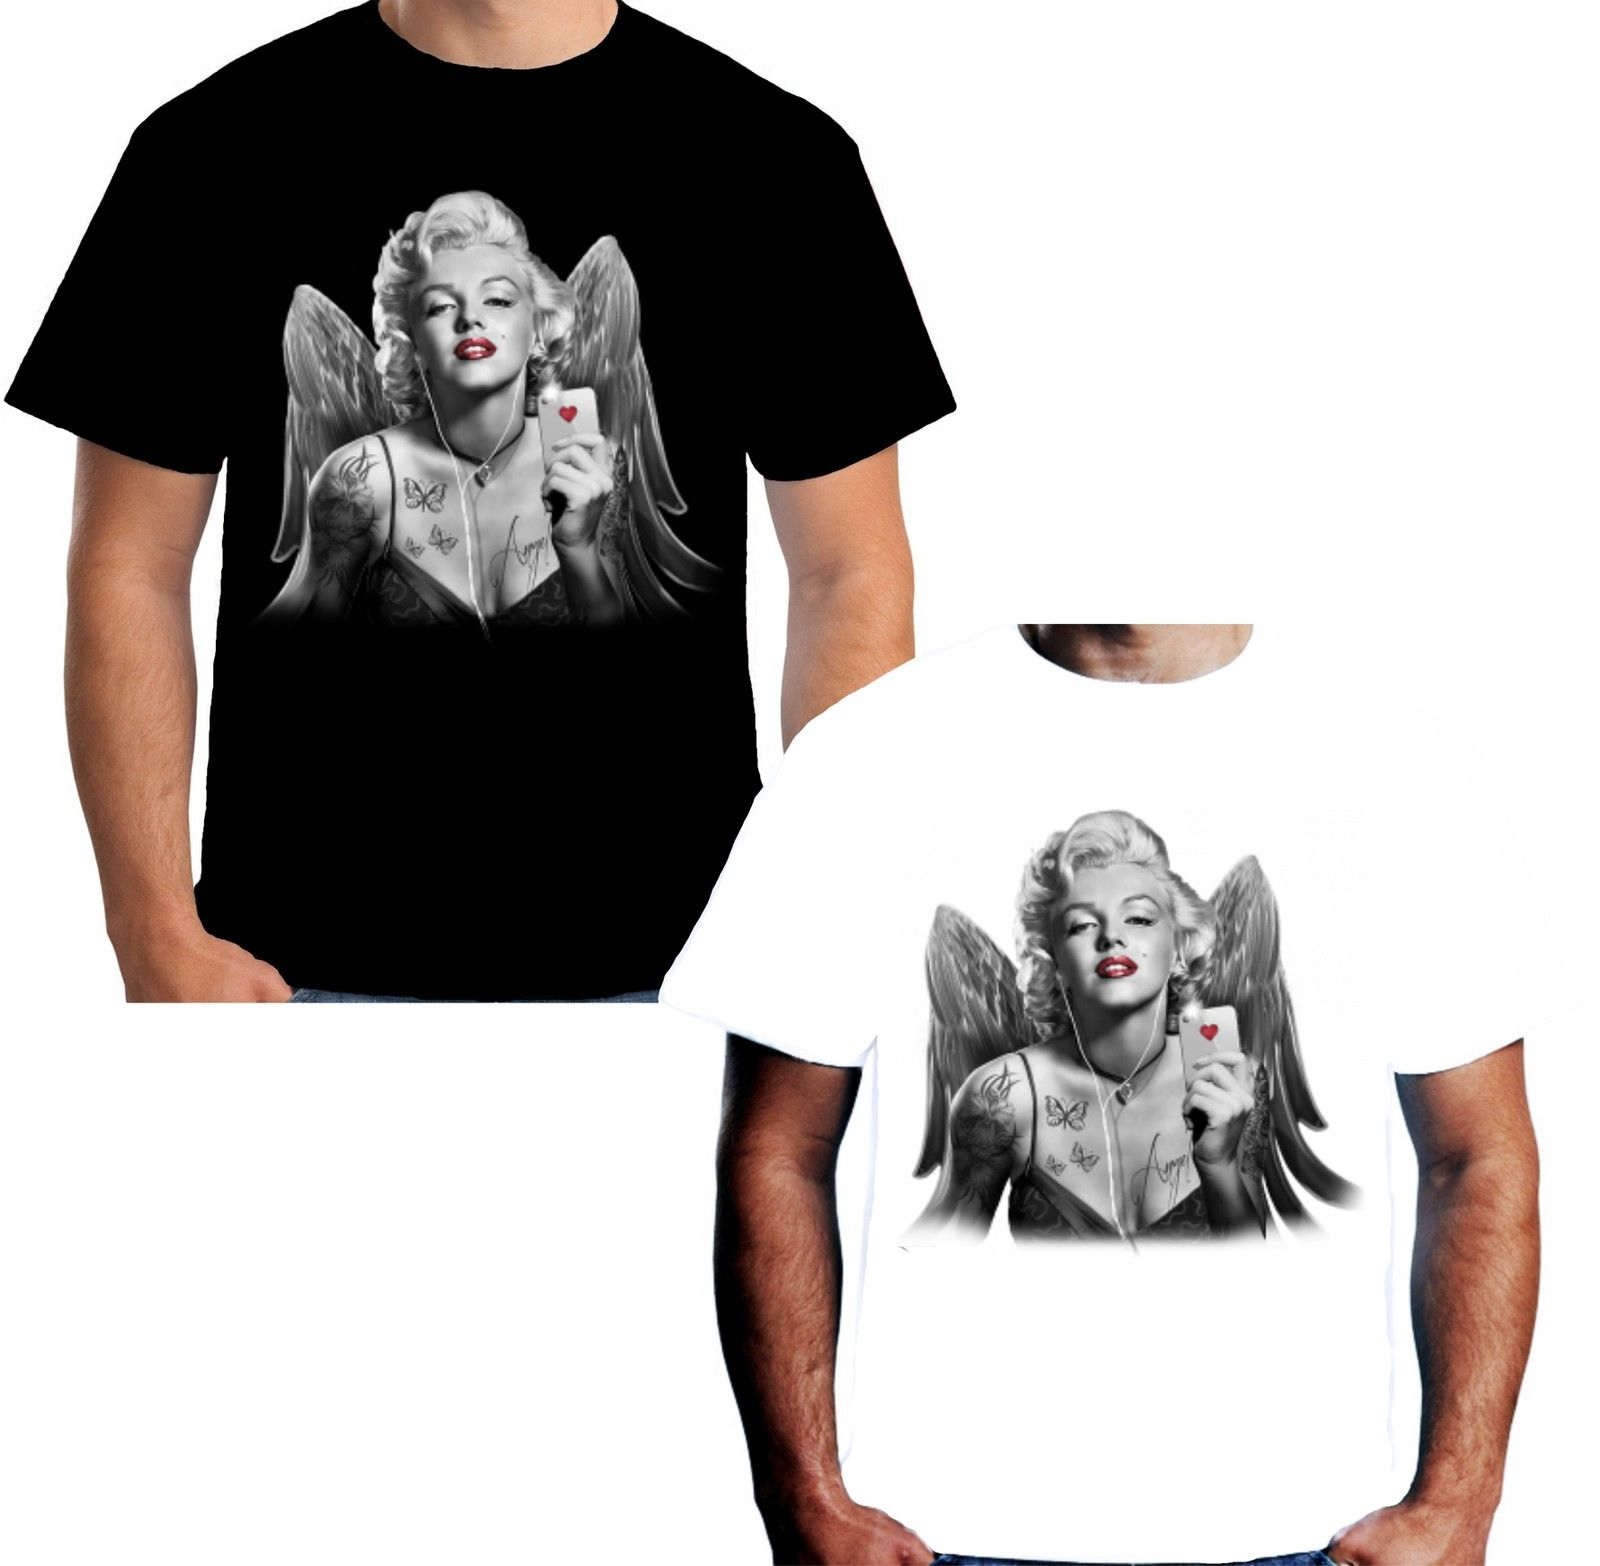 Short Sleeve T Shirt Funny Print Clothing Tops Hipster Fashion Marilyn Monroe Poker T Shirt Men High Quality Tees